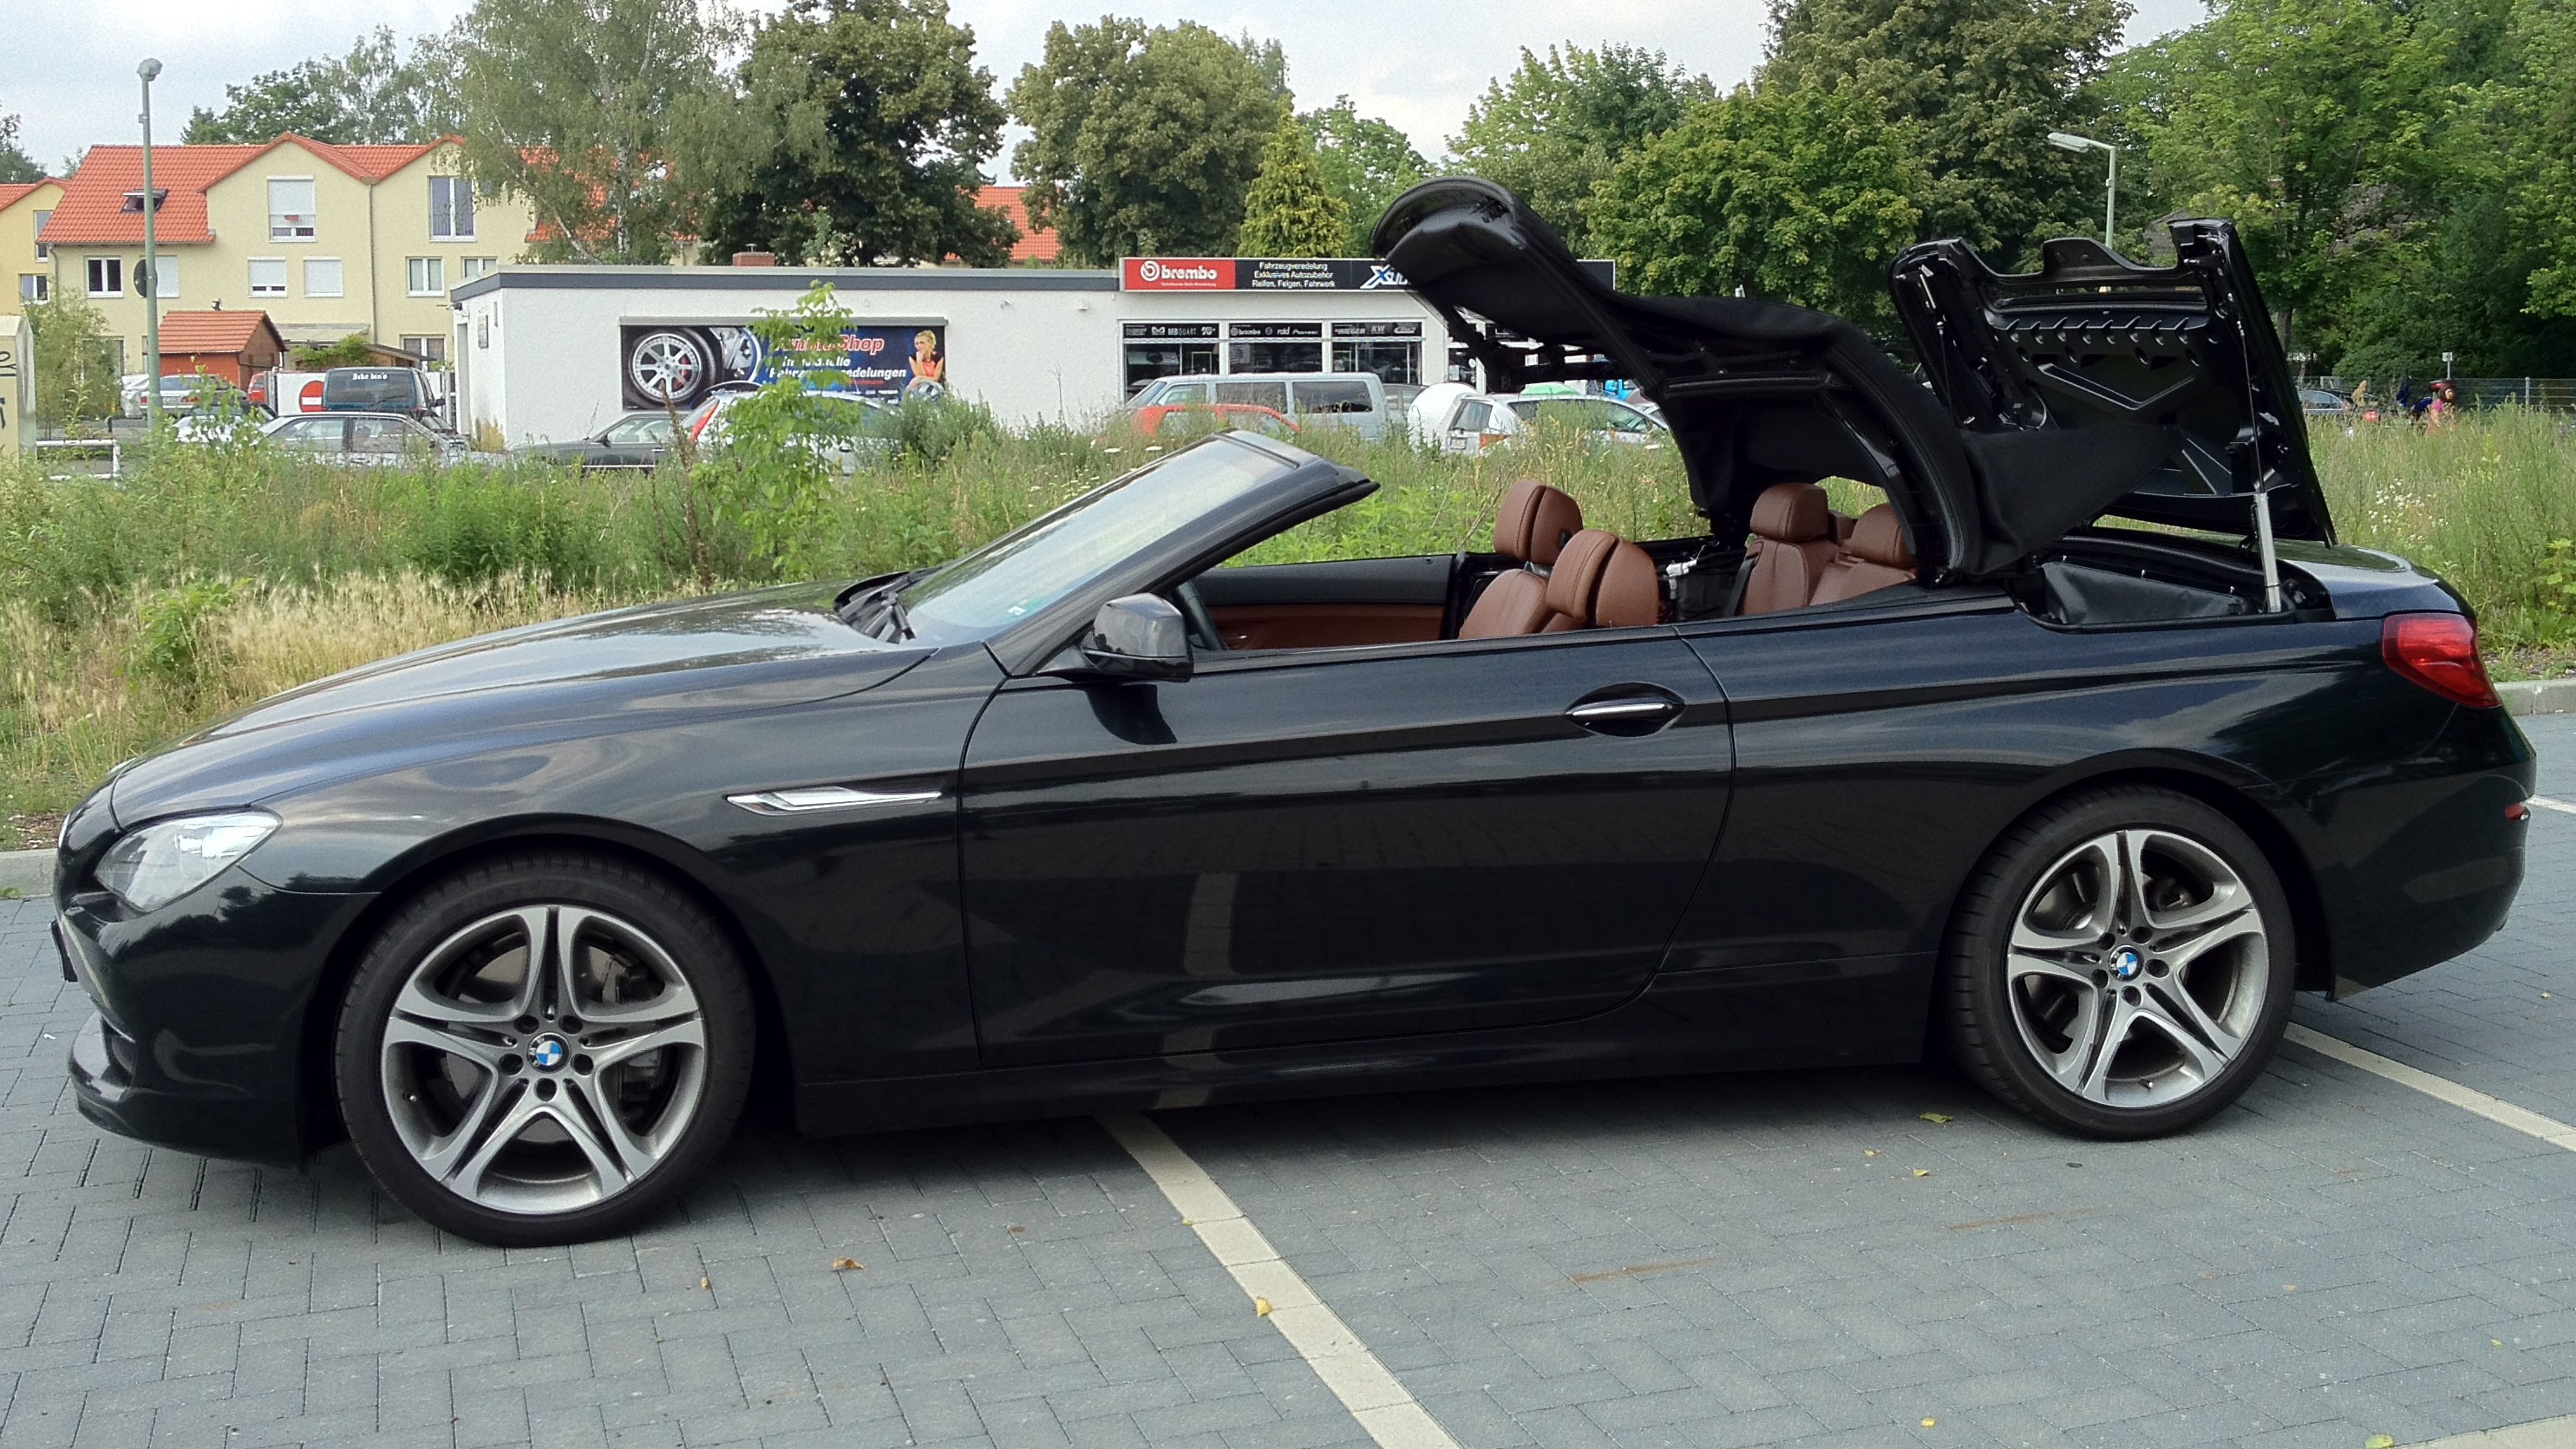 mods4cars neue zusatz verdecksteuerung f r bmw 6er cabrio. Black Bedroom Furniture Sets. Home Design Ideas